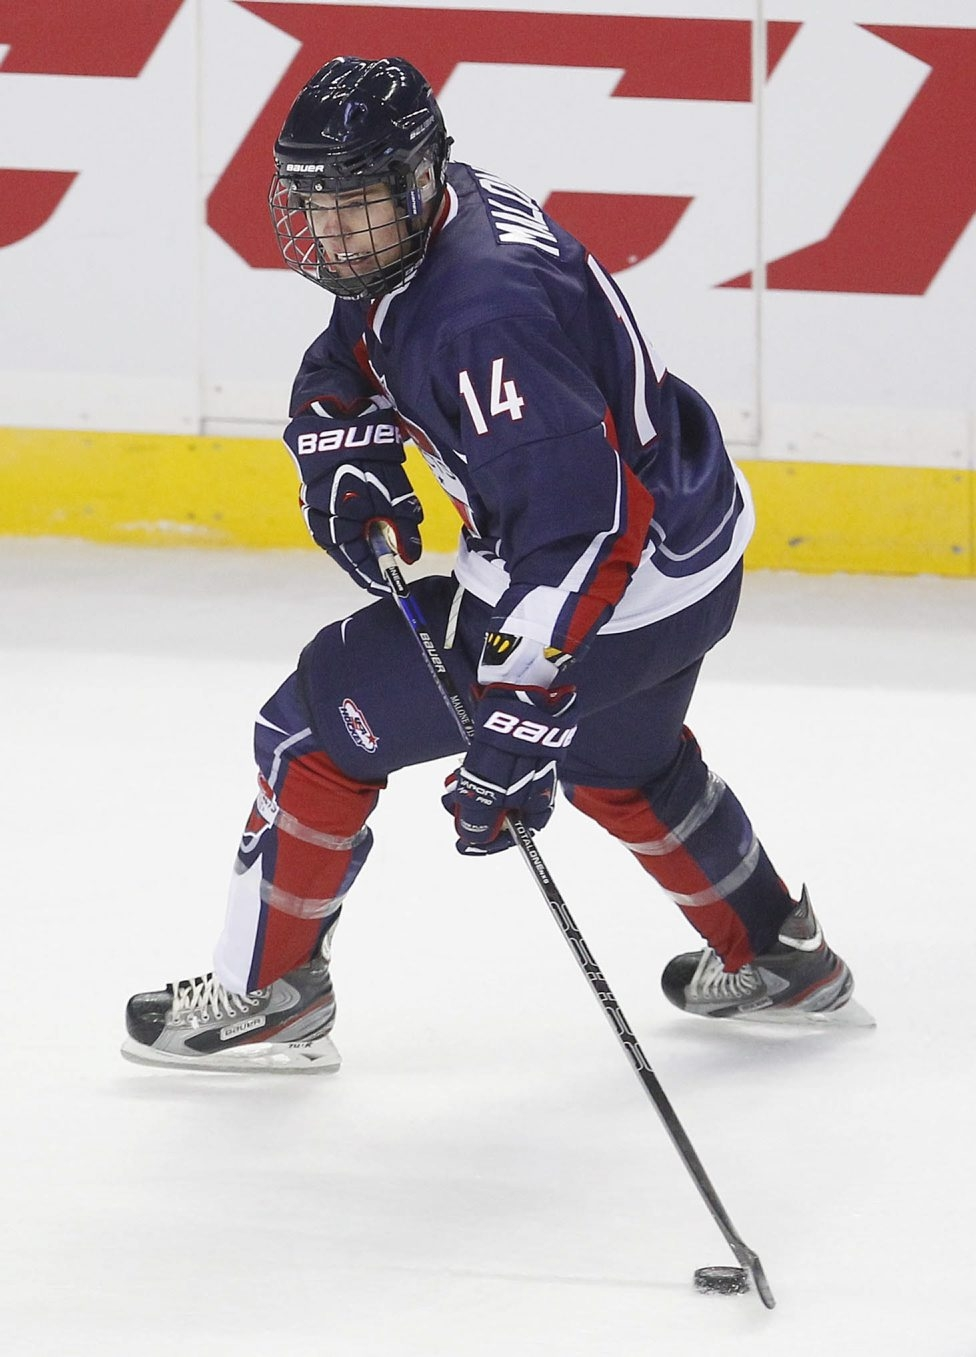 Mark Mulville / Buffalo News    The Blue Team's Sean Malone looks to make a pass during the first period of the USA Hockey Prospects game.